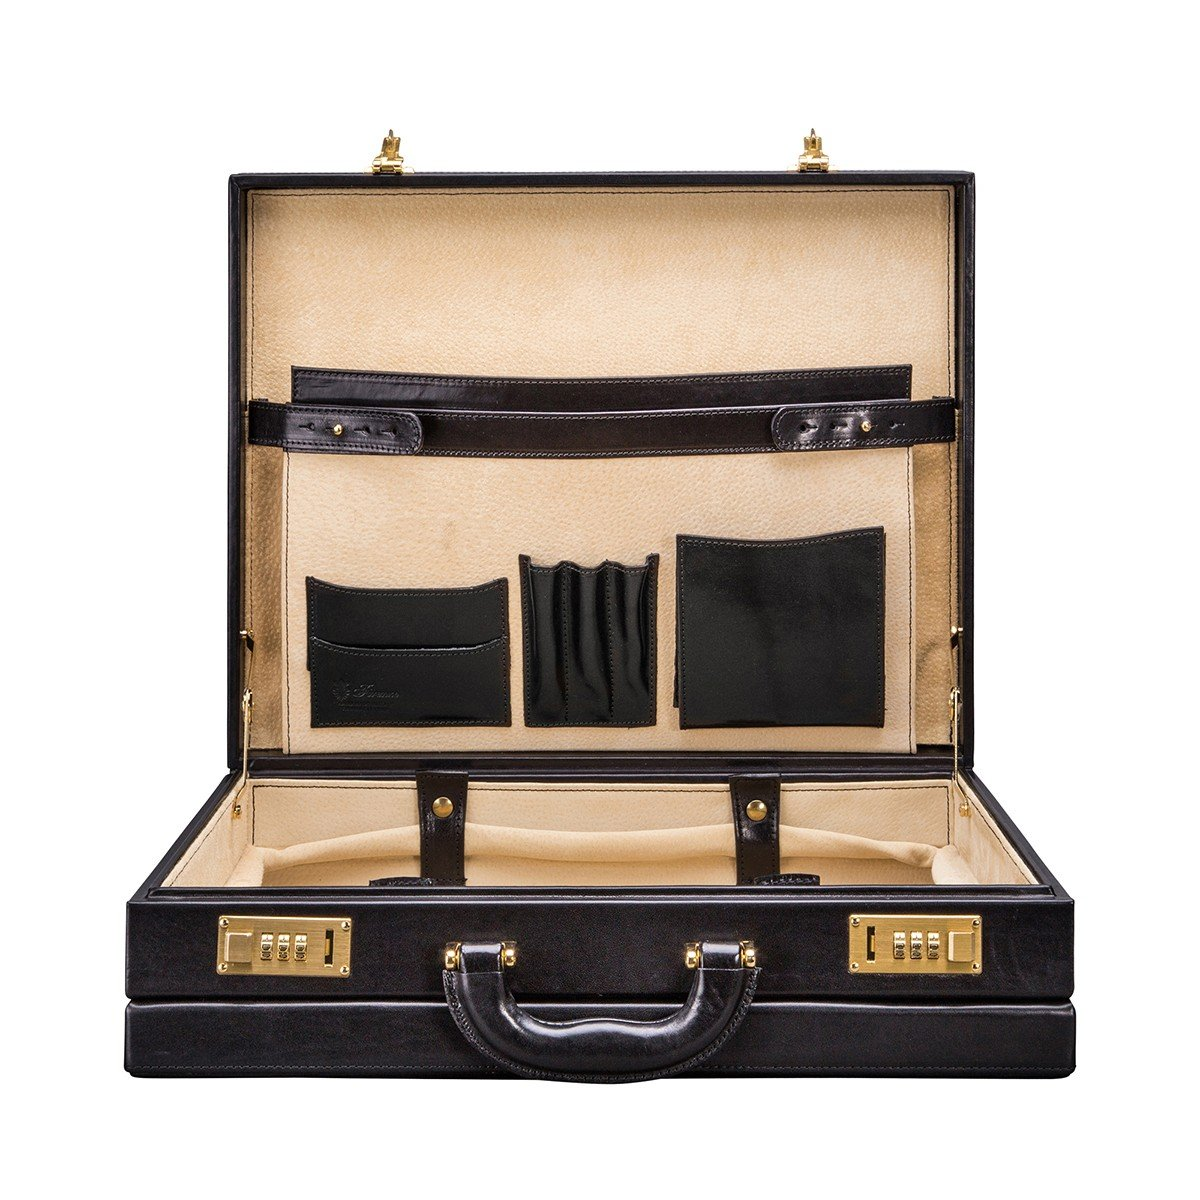 Maxwell Scott Personalized Deluxe Handcrafted Finest Italian Leather Black Attache Case (The Strada)